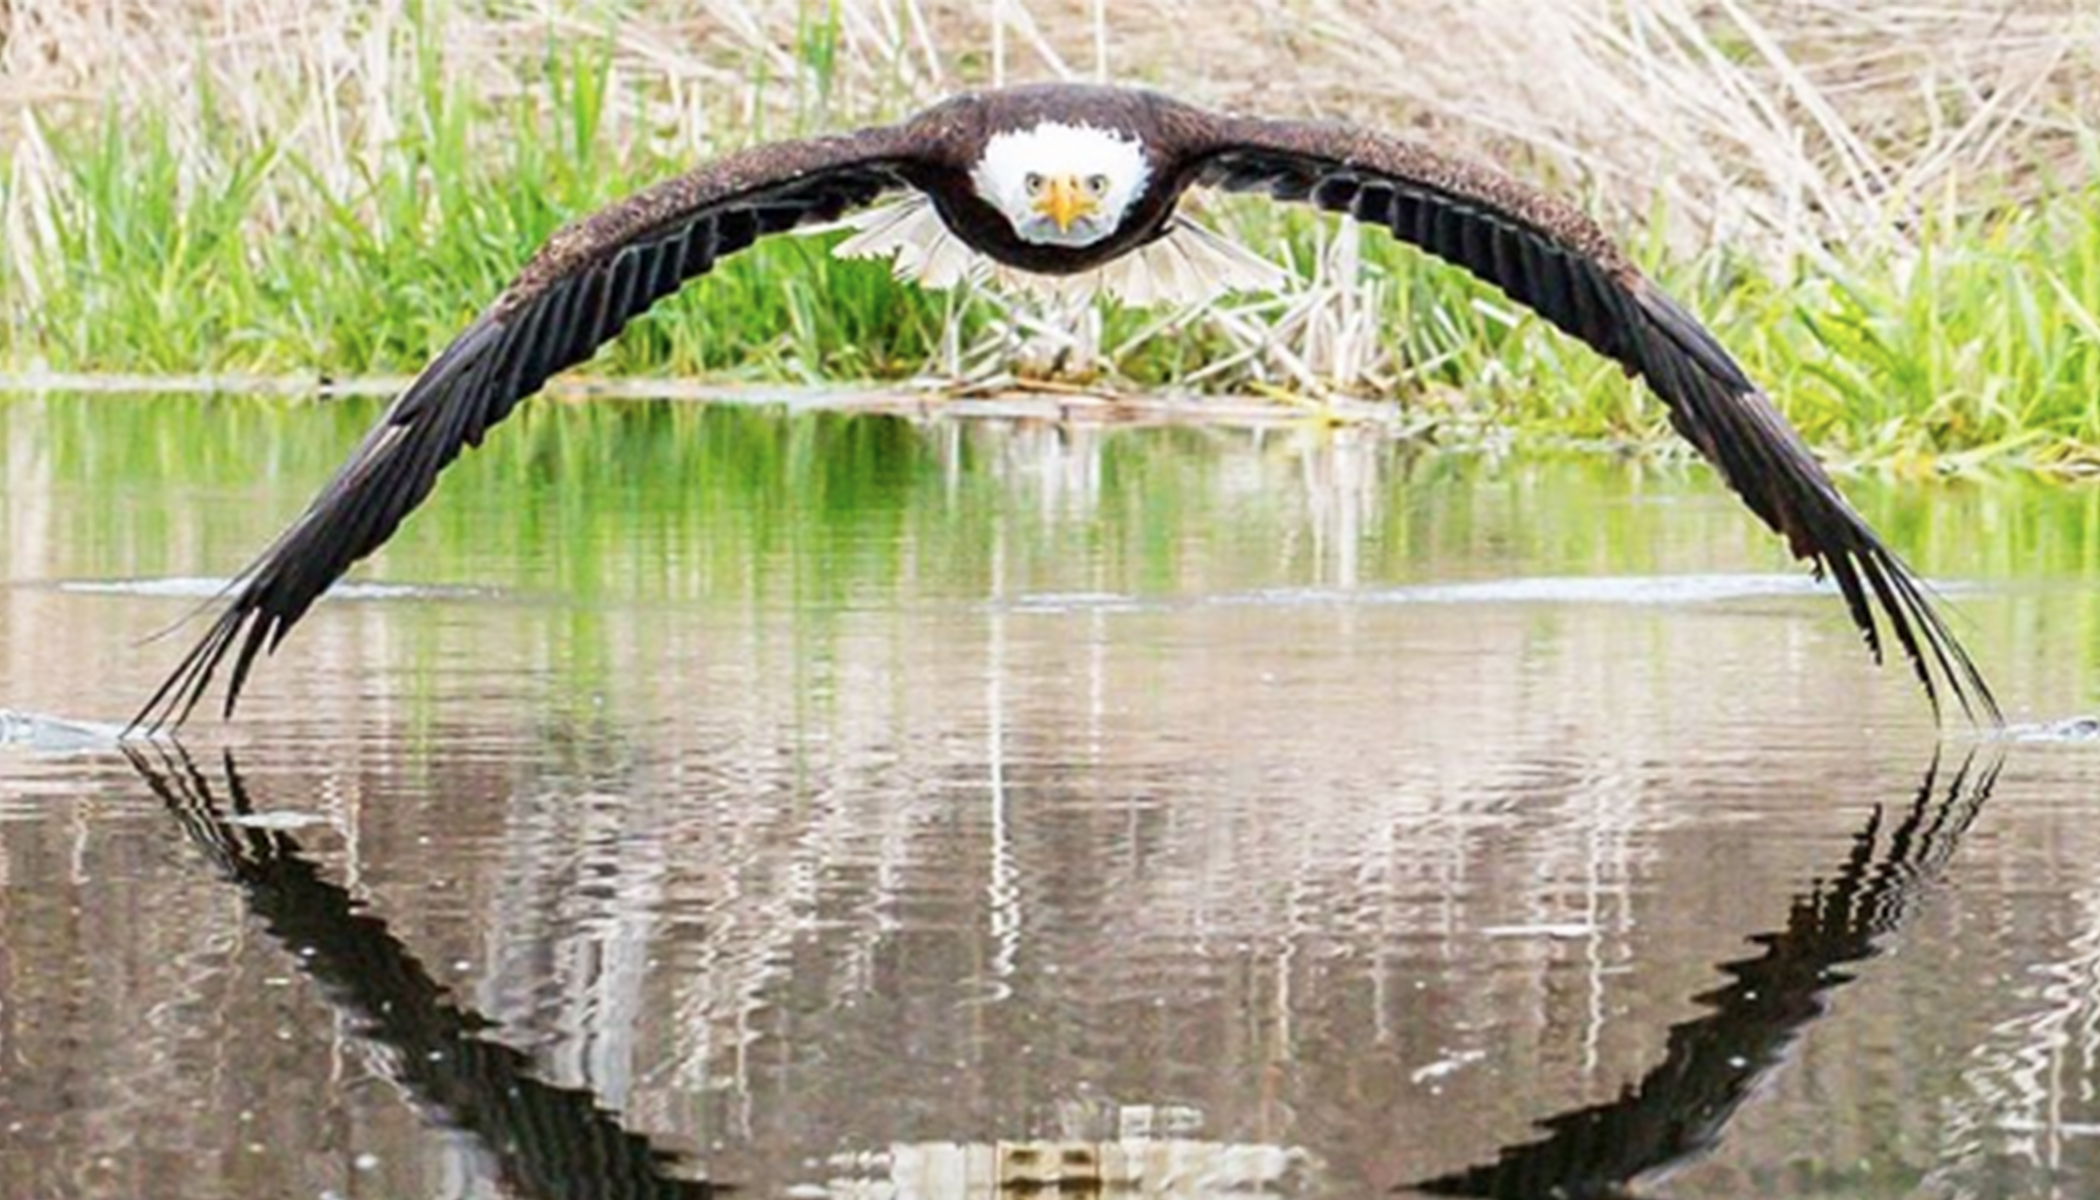 Stunning: Photographer Captures Image of Close Encounter With a Bald Eagle